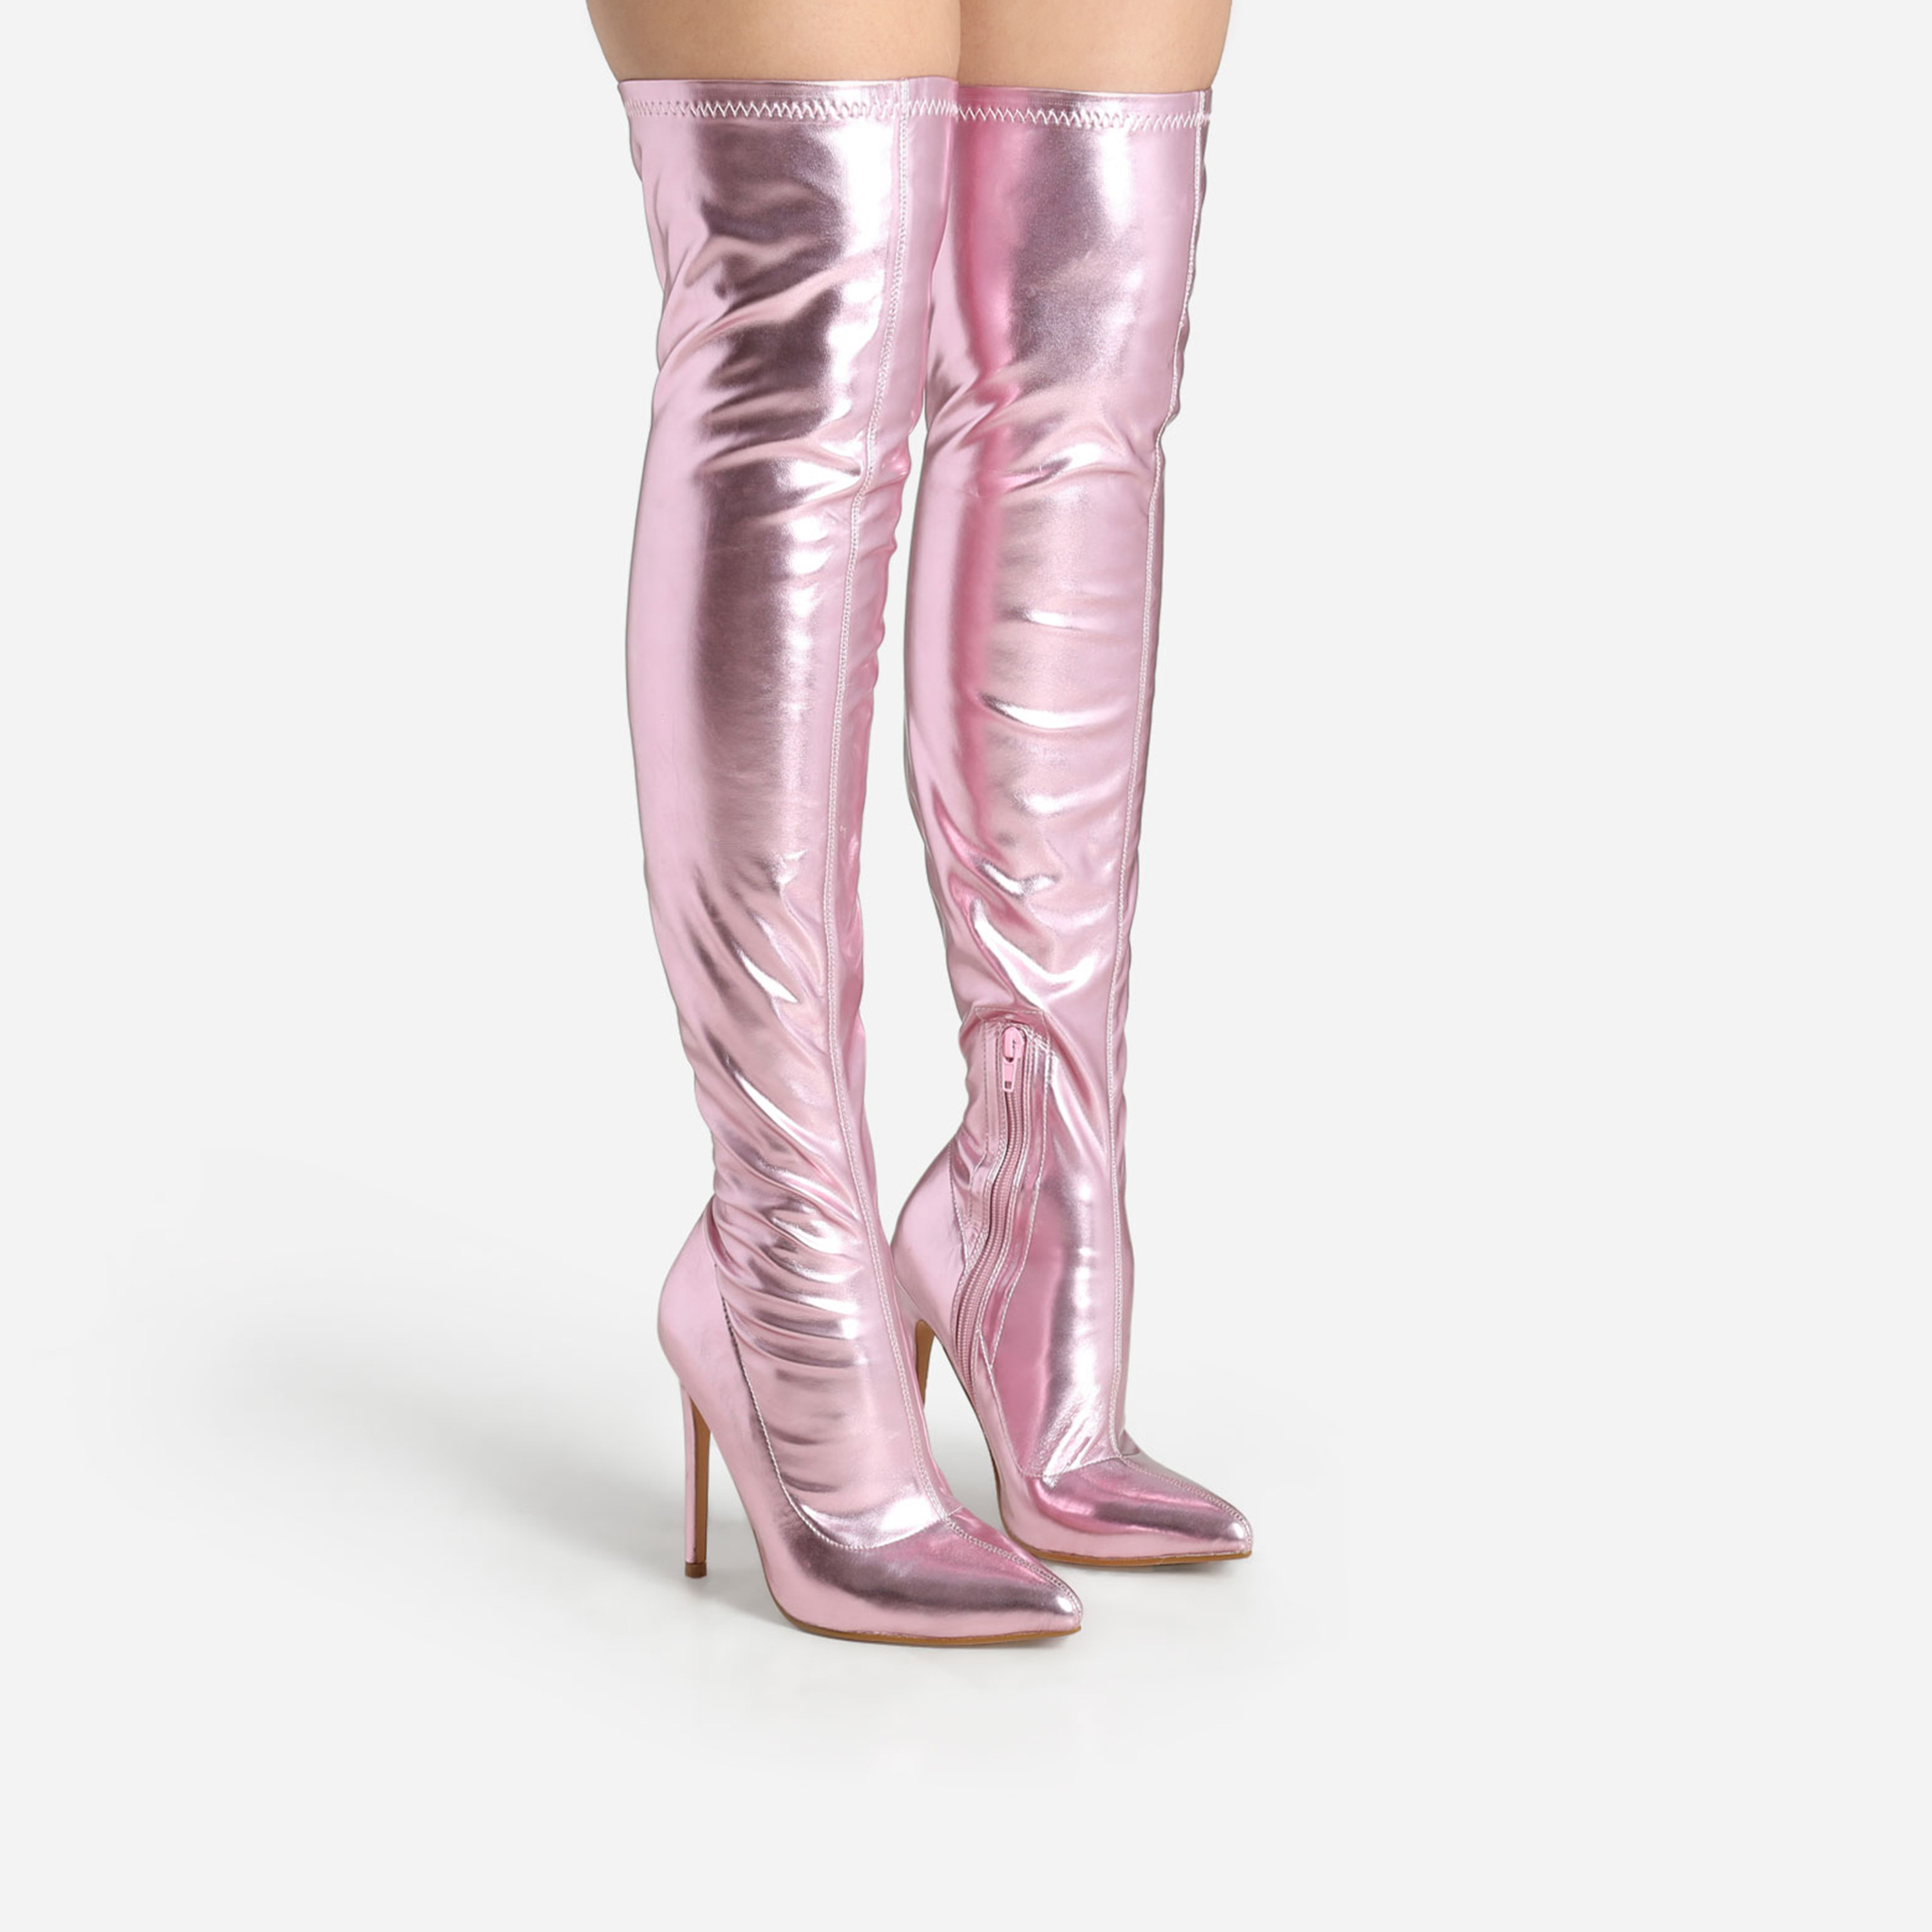 JoJo Over The Knee Thigh High Long Boot In Pink Holographic Faux Leather